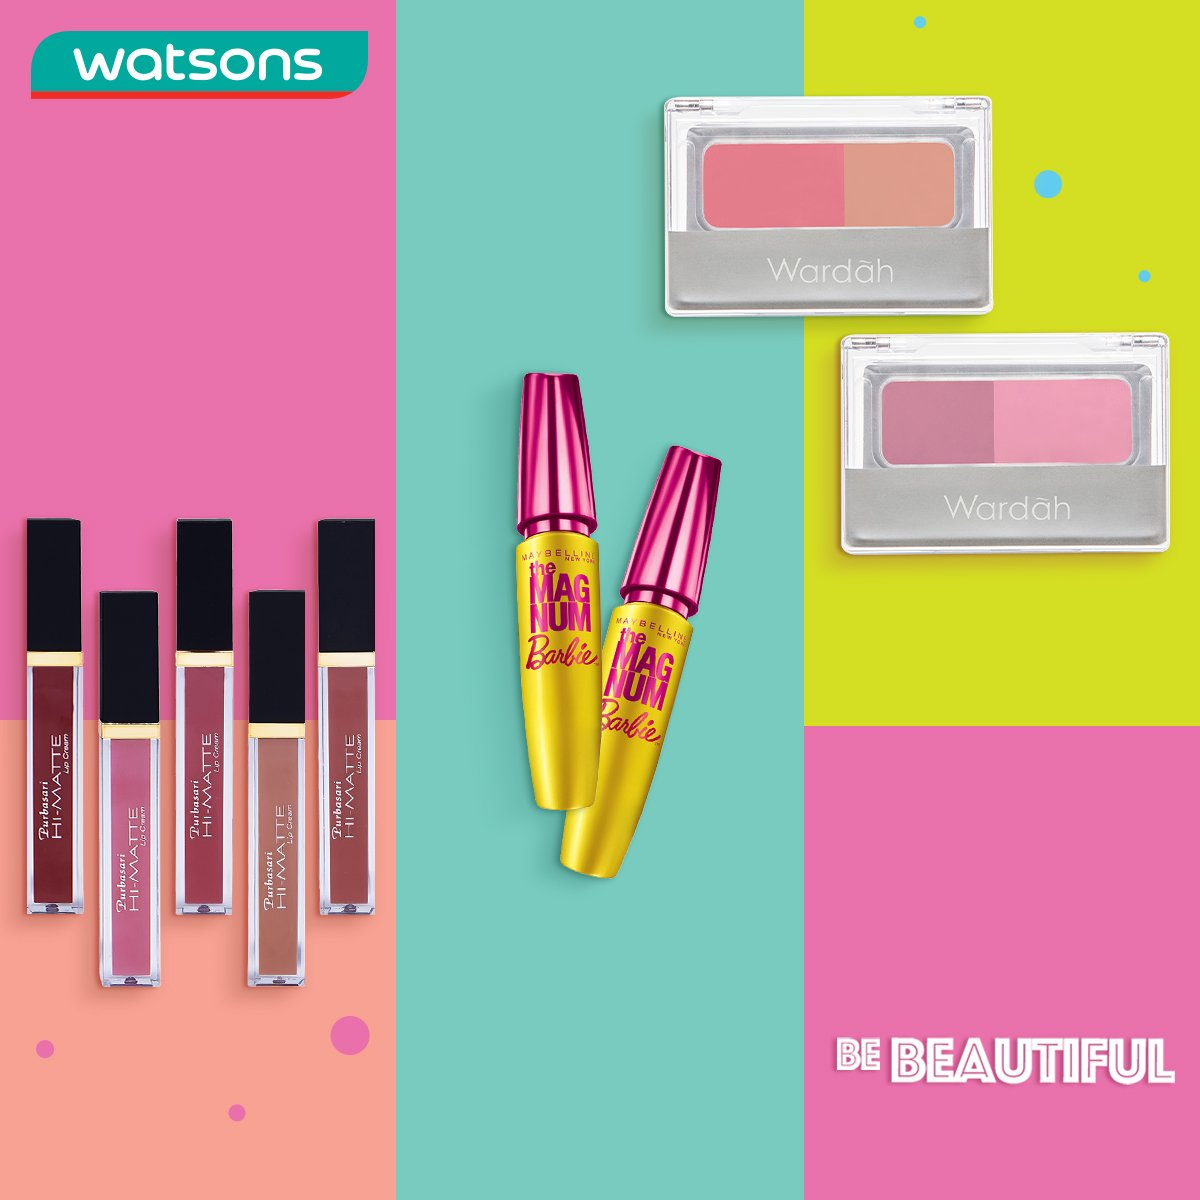 Watsons Indonesia On Twitter Kick Tuesday Blues Dengan Tampil Lipstick Matte Purbasari Purba Sari Lookgood Feelgreat Save More For Ur Fav Makeup Anytime Anywhere With Shoppin In